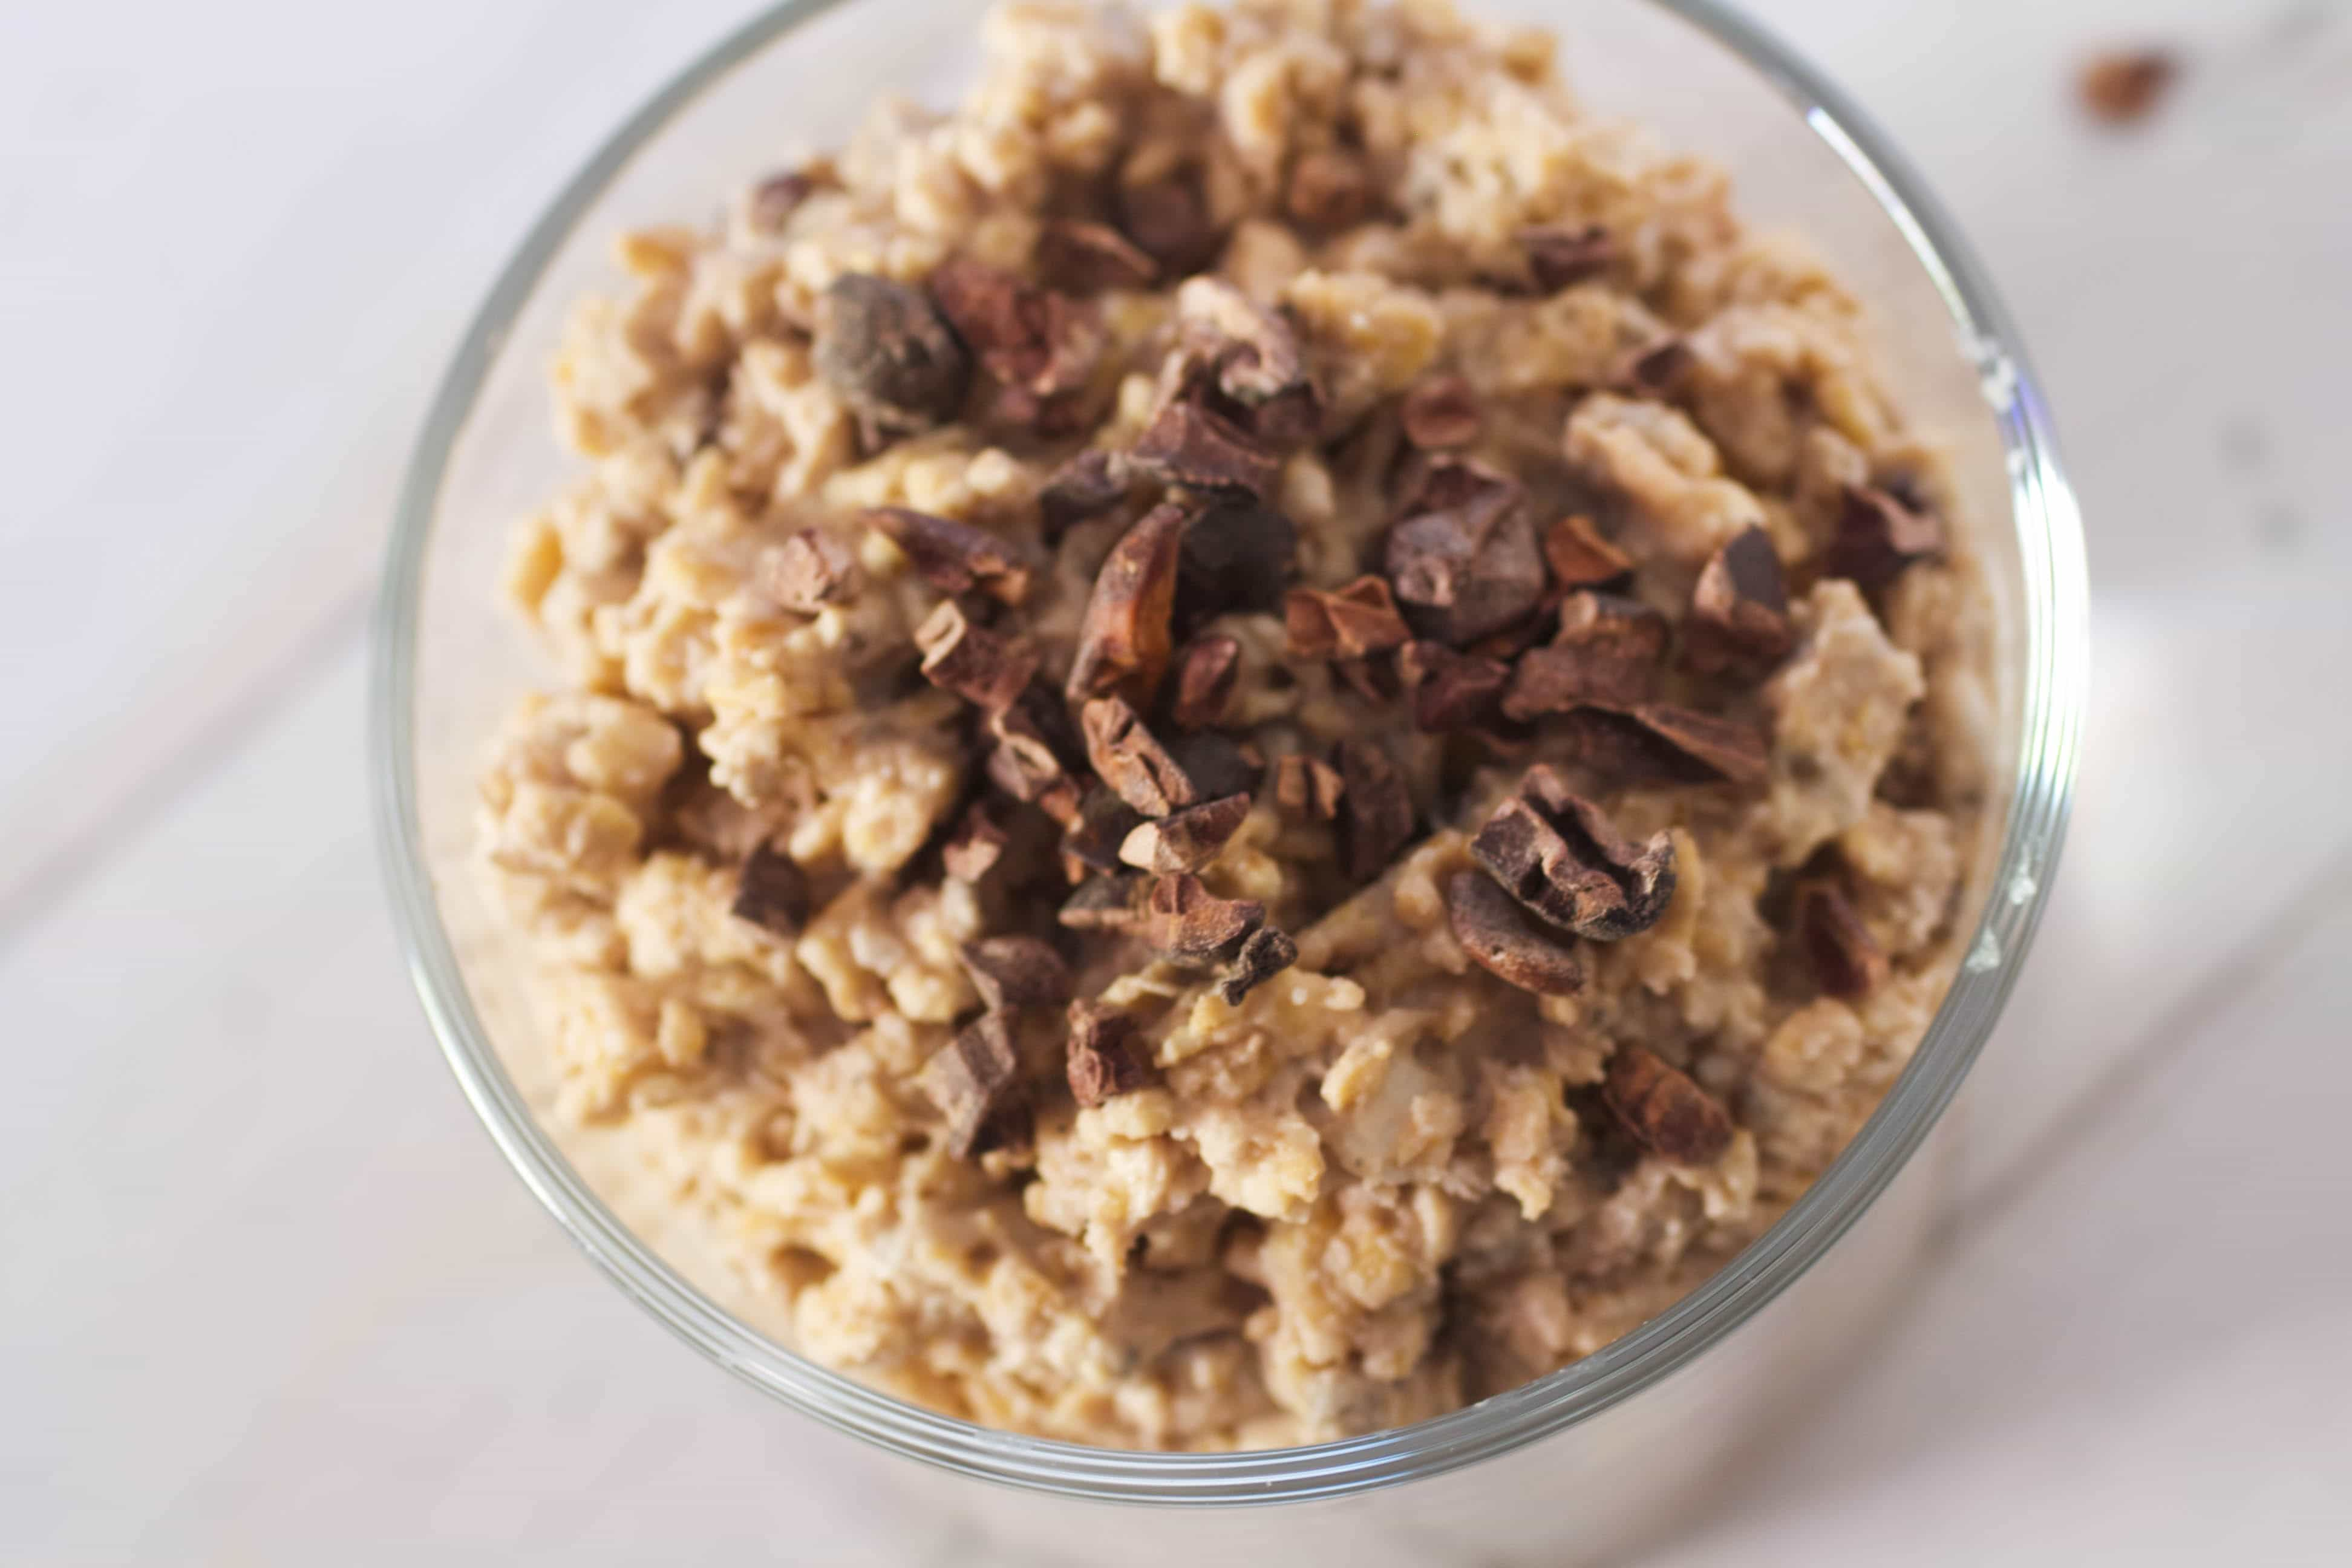 Healthy breakfast oats with cacao nibs sprinkled on top.